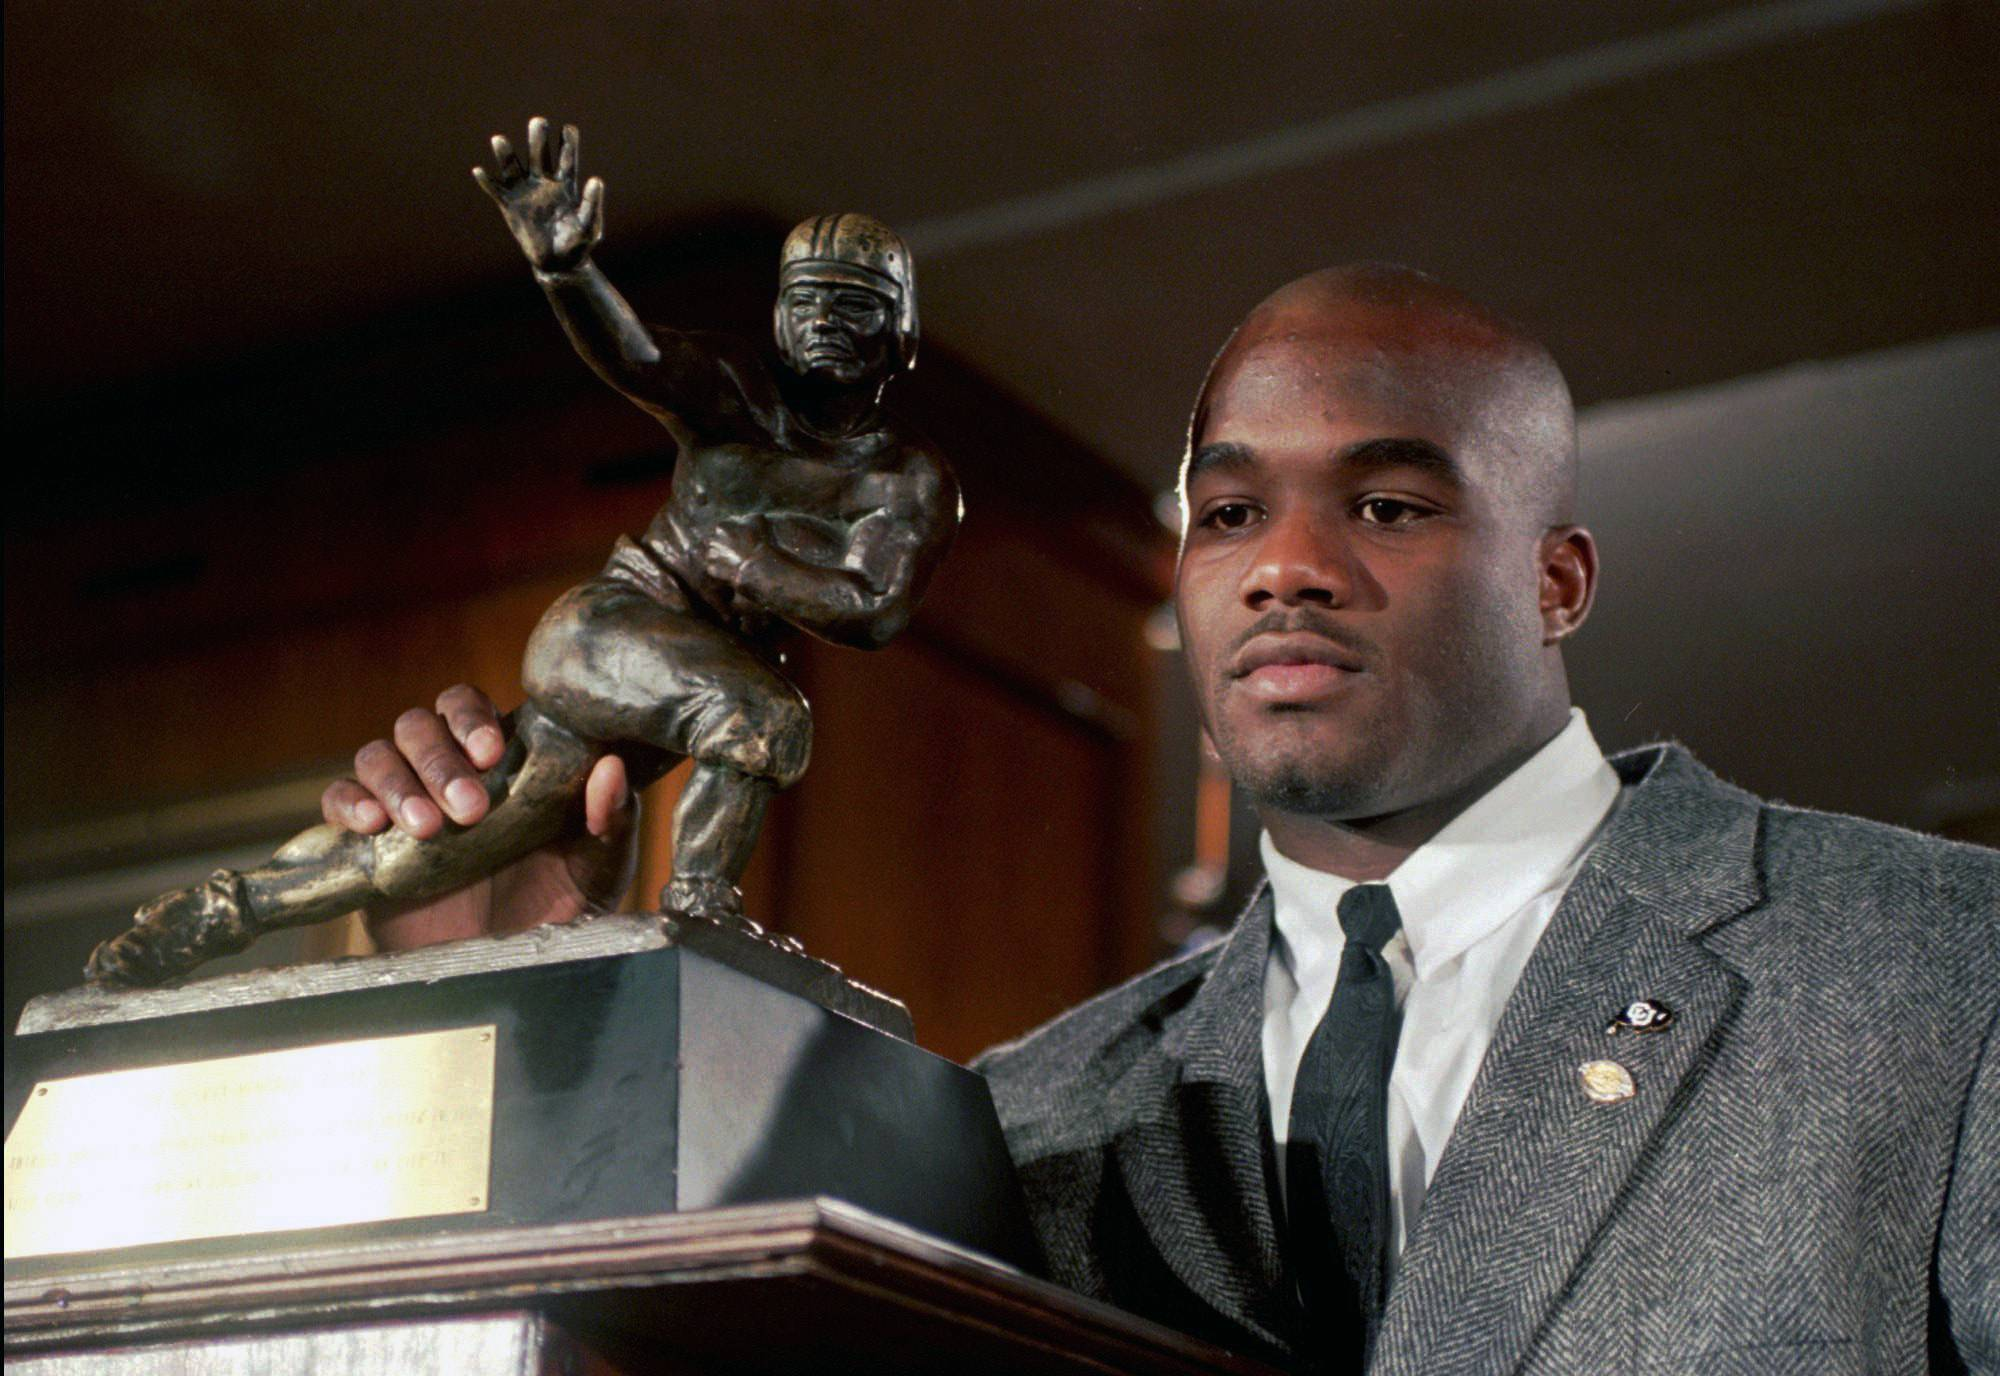 Mike Imrem recalls former Bears RB Rashaan Salaam as a huge name whose career ended far too soon. Salaam was out of the NFL after four seasons. Twenty years later he is dead instead of headed to the Pro Football Hall of Fame.